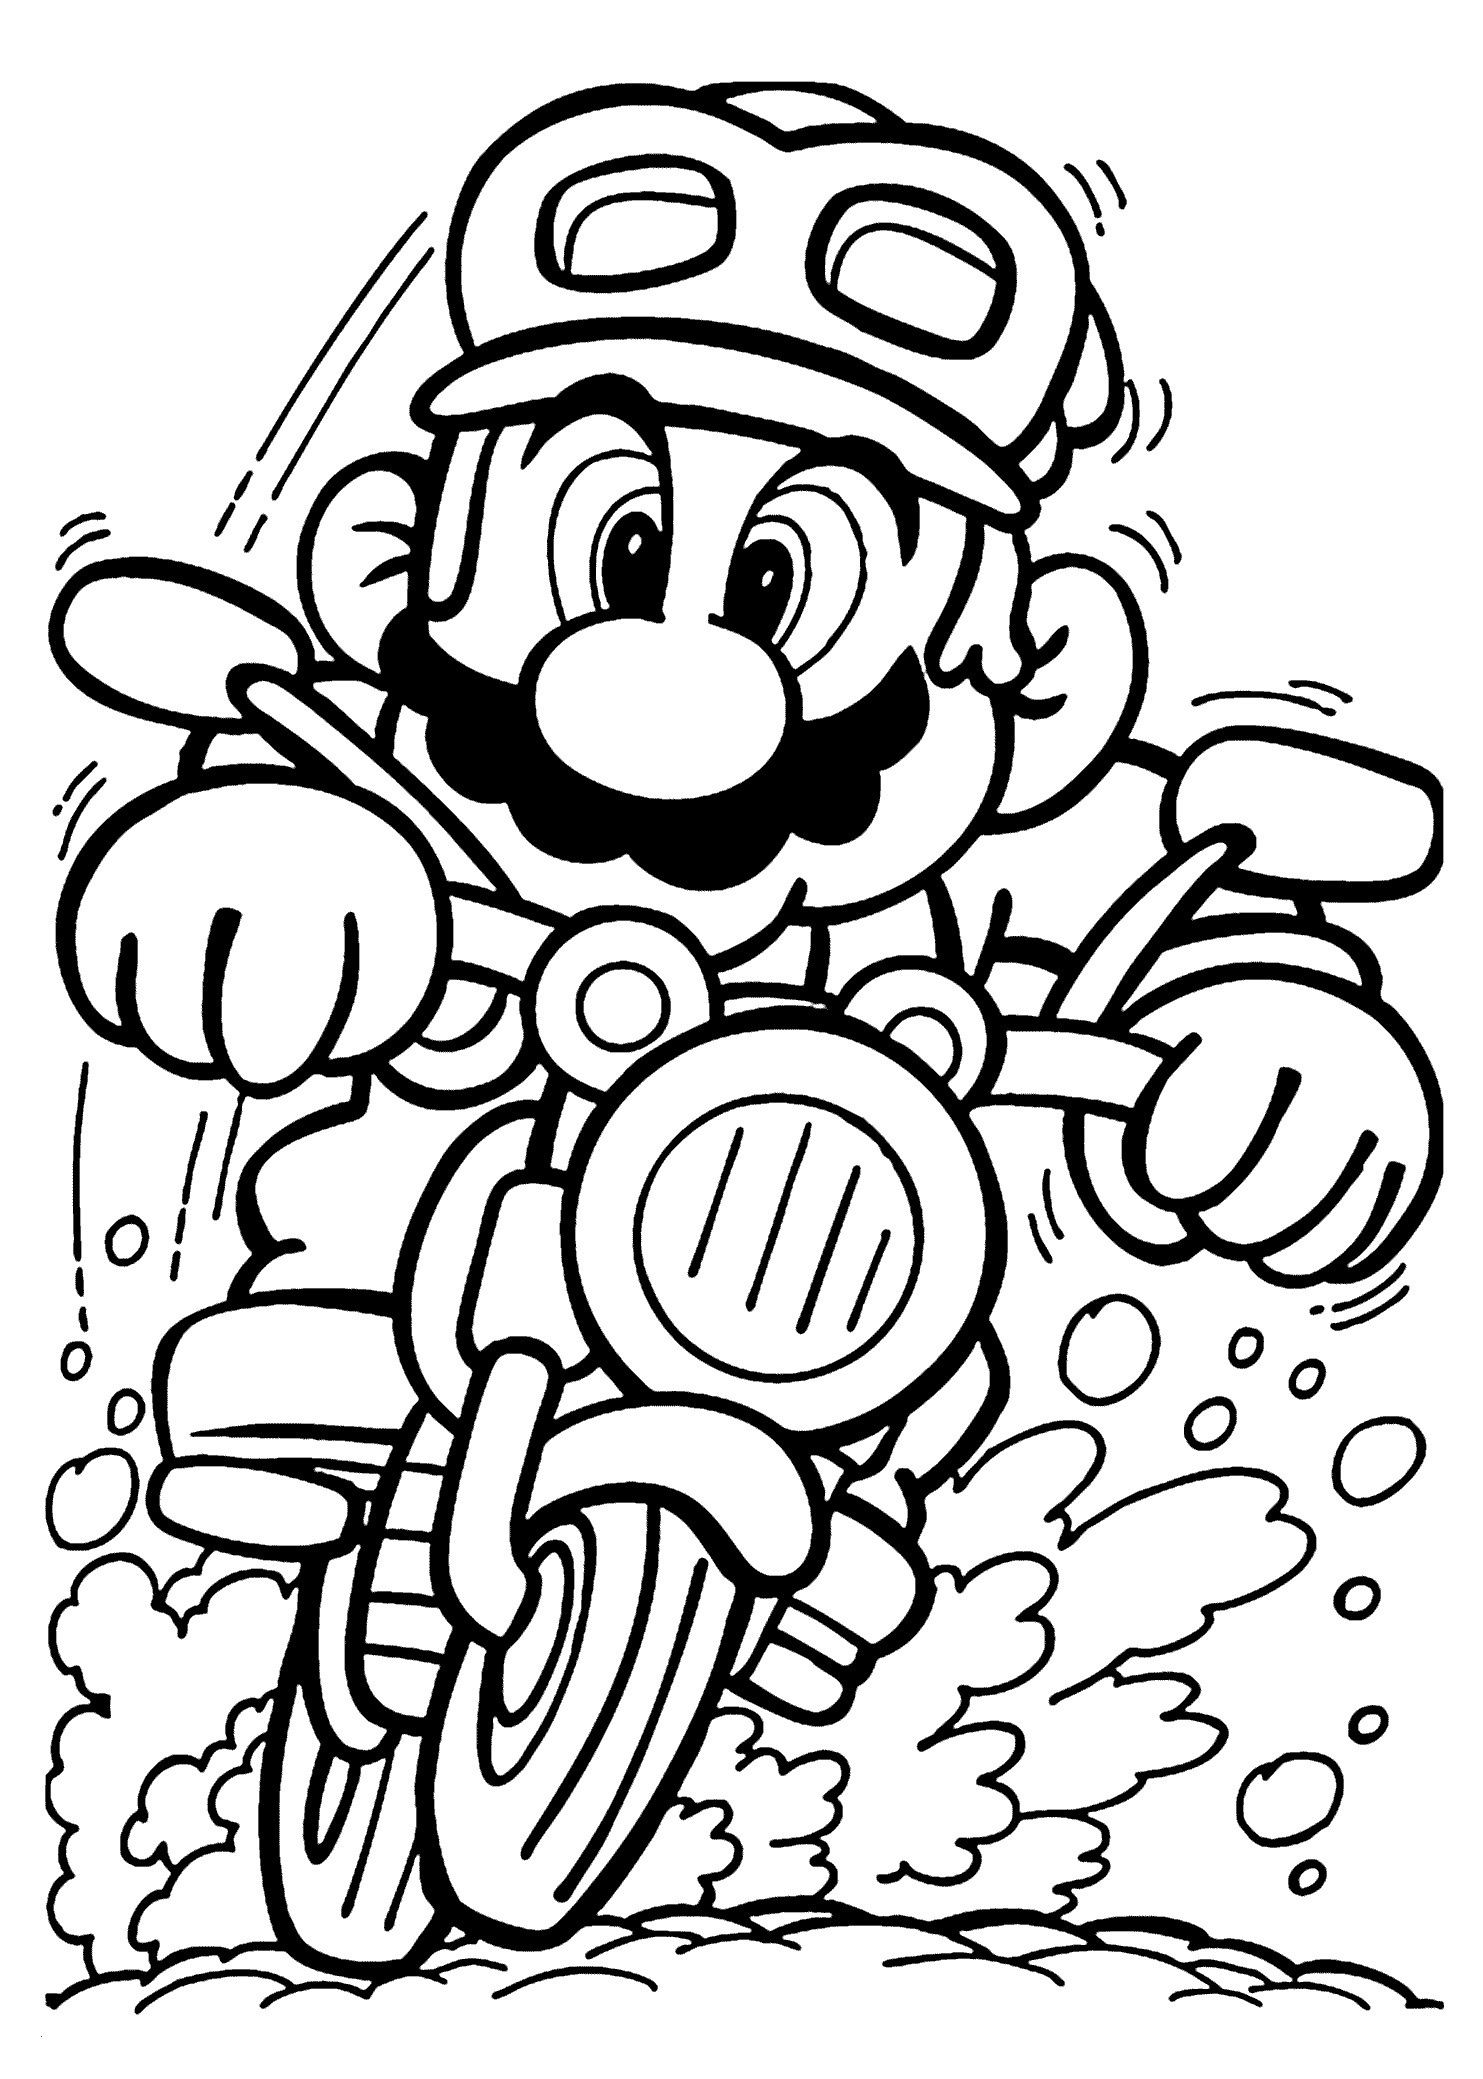 30 Great Image Of Motorcycle Coloring Pages Albanysinsanity Com Super Mario Coloring Pages Mario Coloring Pages Easy Coloring Pages